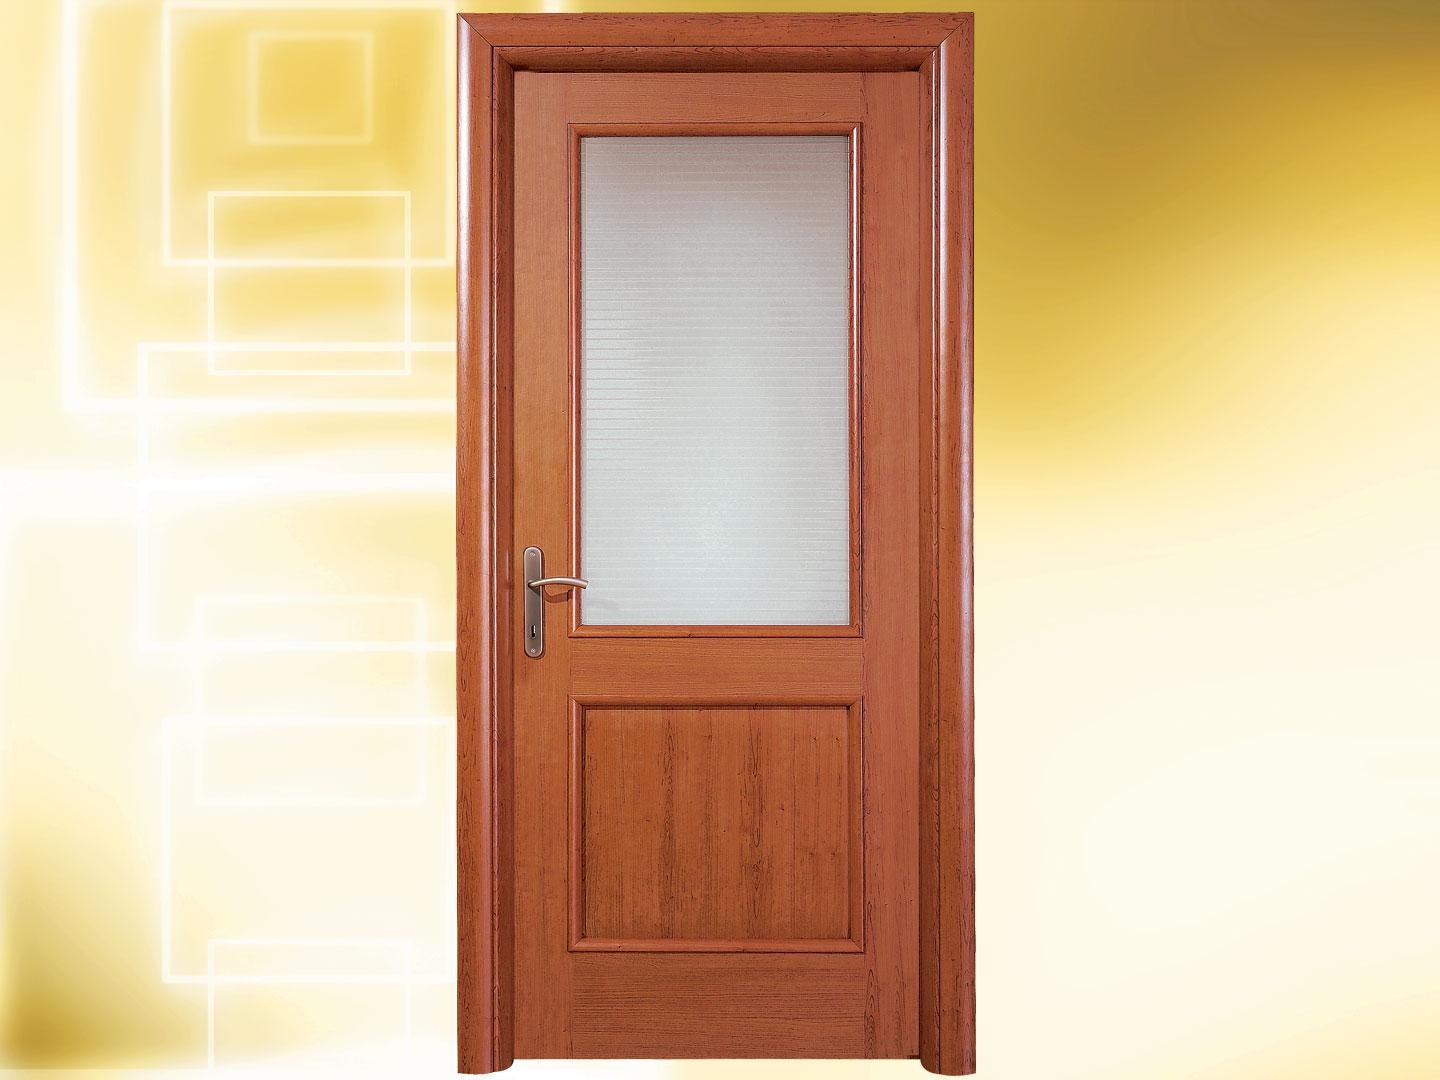 Windows shutters exterior doors and interior doors